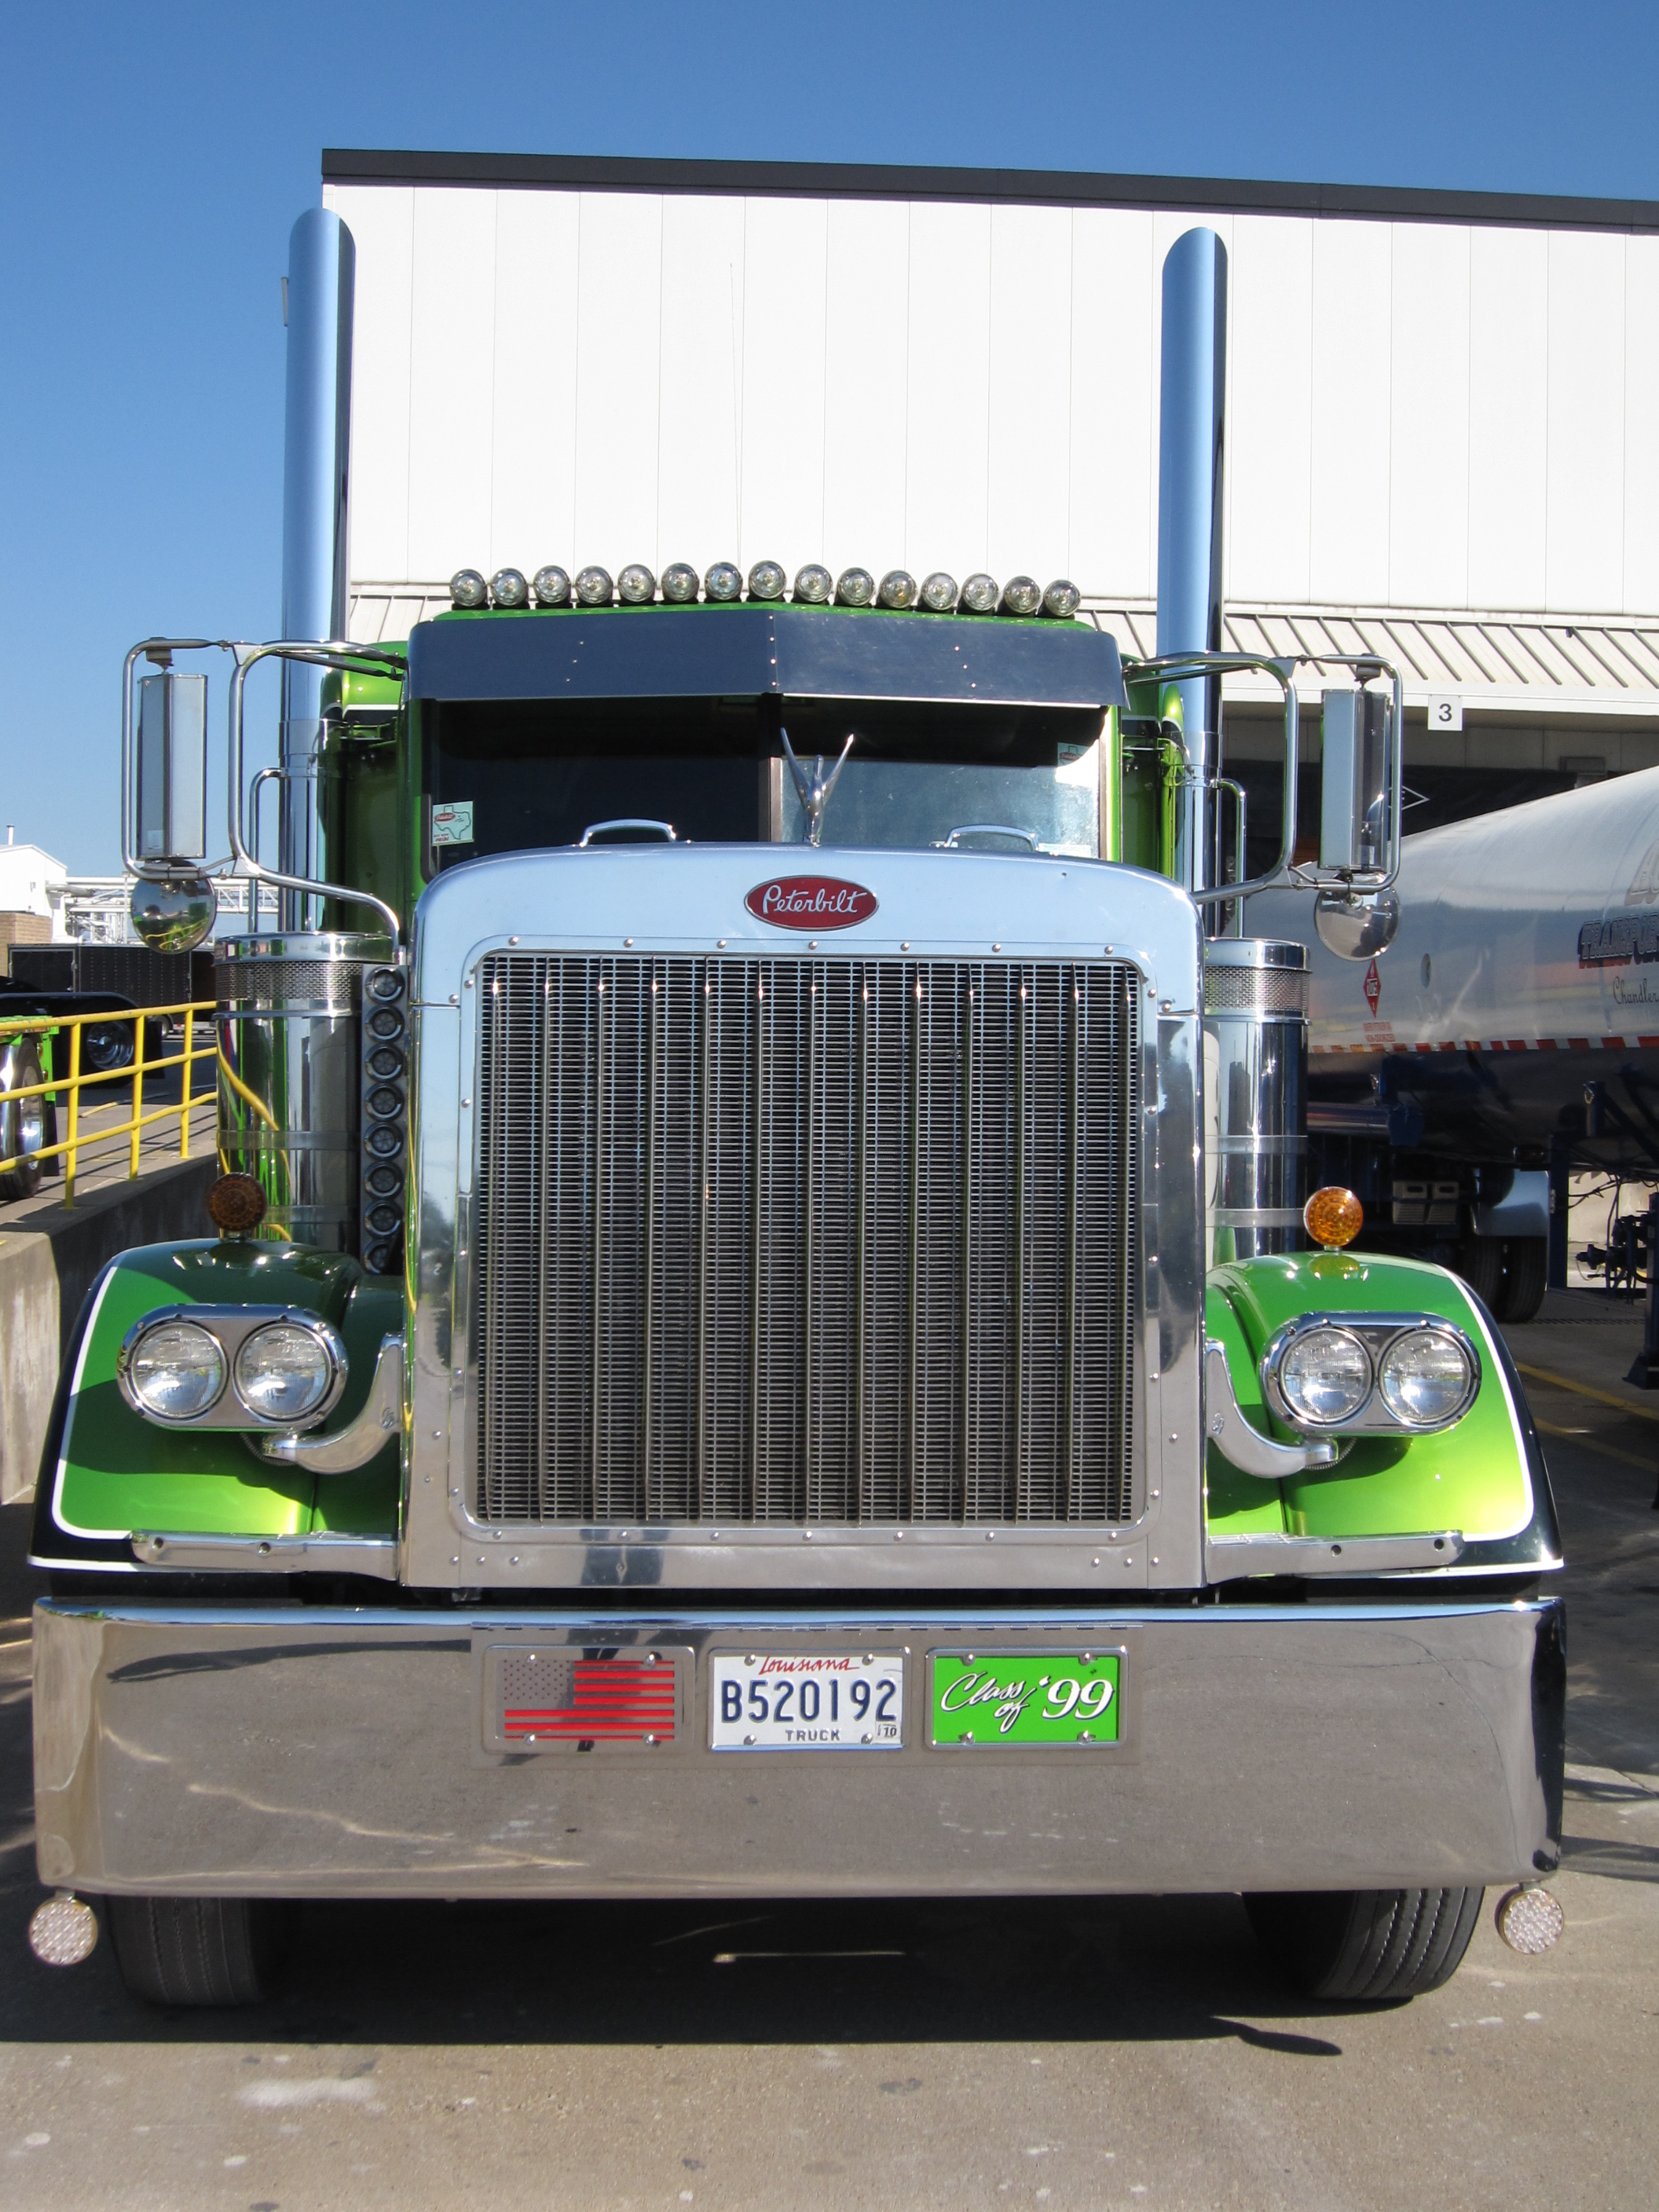 Semi Trucks For Sale: Peterbilt Cabover Semi Trucks For Sale